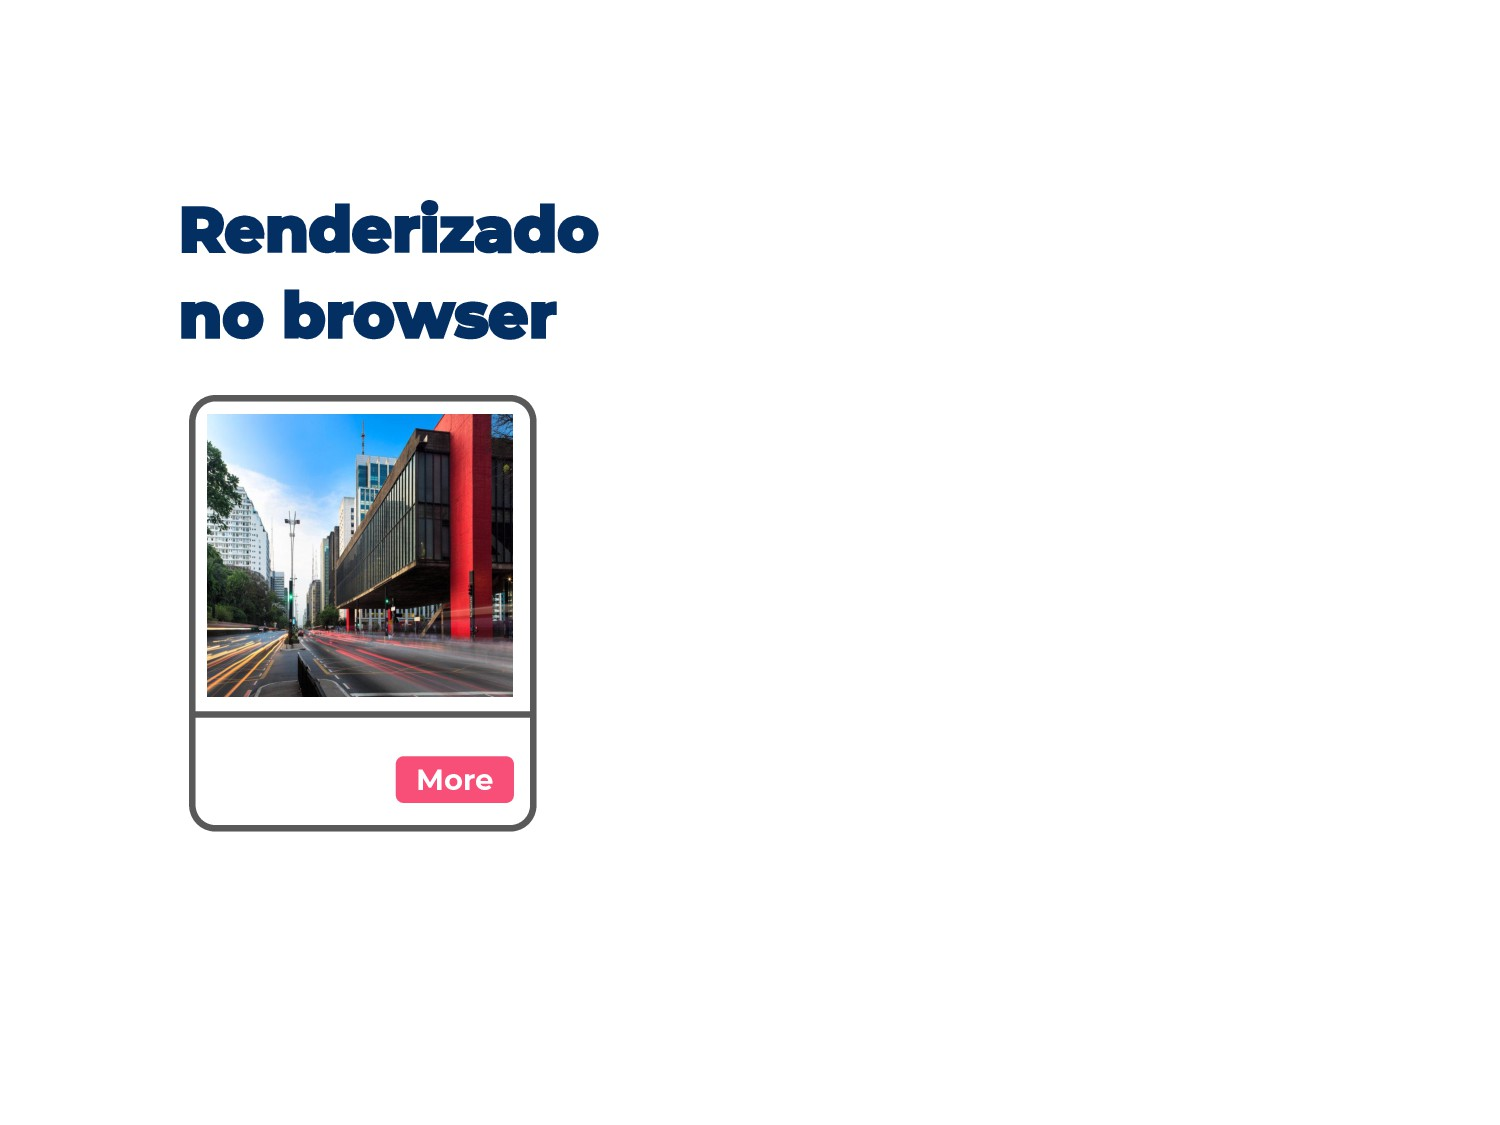 Renderizado no browser More